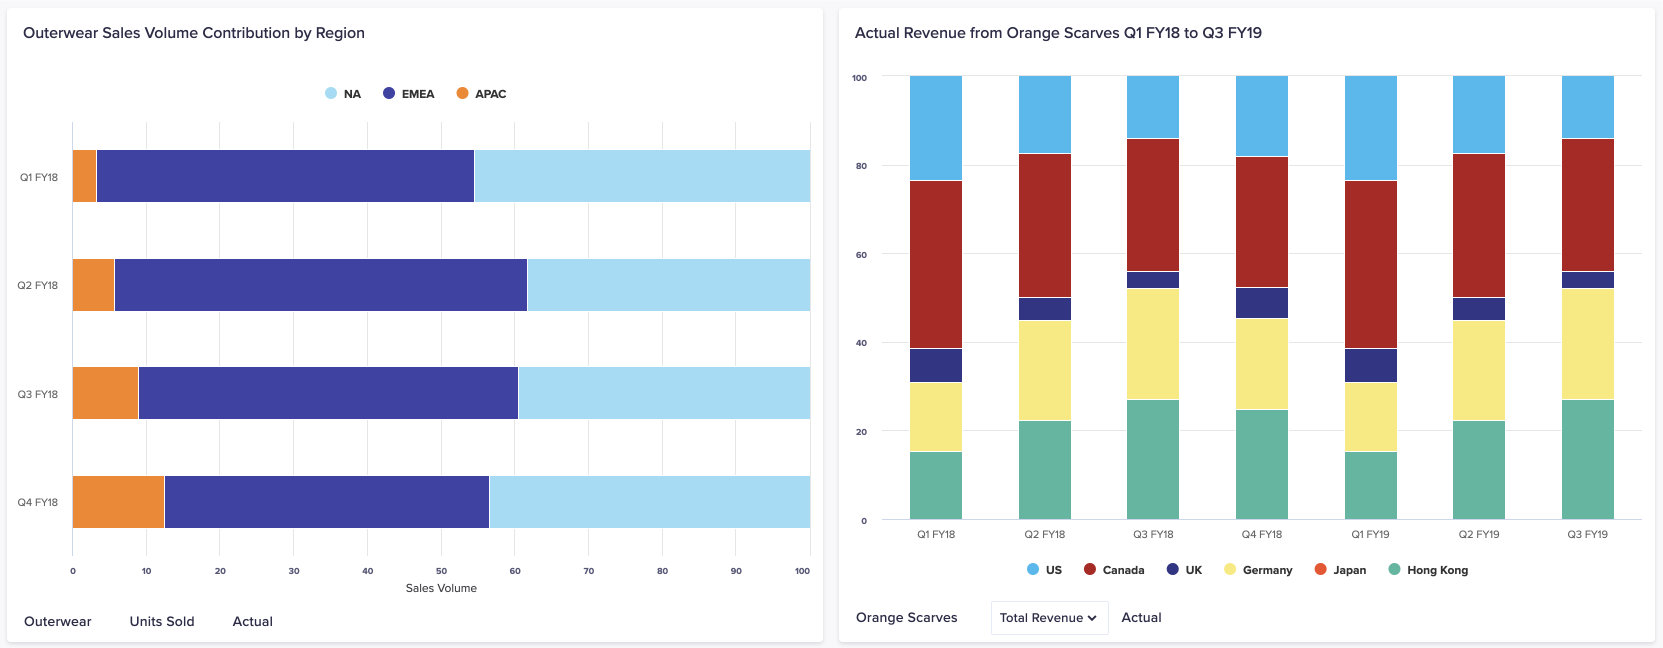 Two charts side by side. On the left is a percentage bar chart showing the relative performance for NA, EMEA, and APAC for FY18. On the right is a percentage column chart showing the relative sales of the Orange Scarf product in several countries over two years.